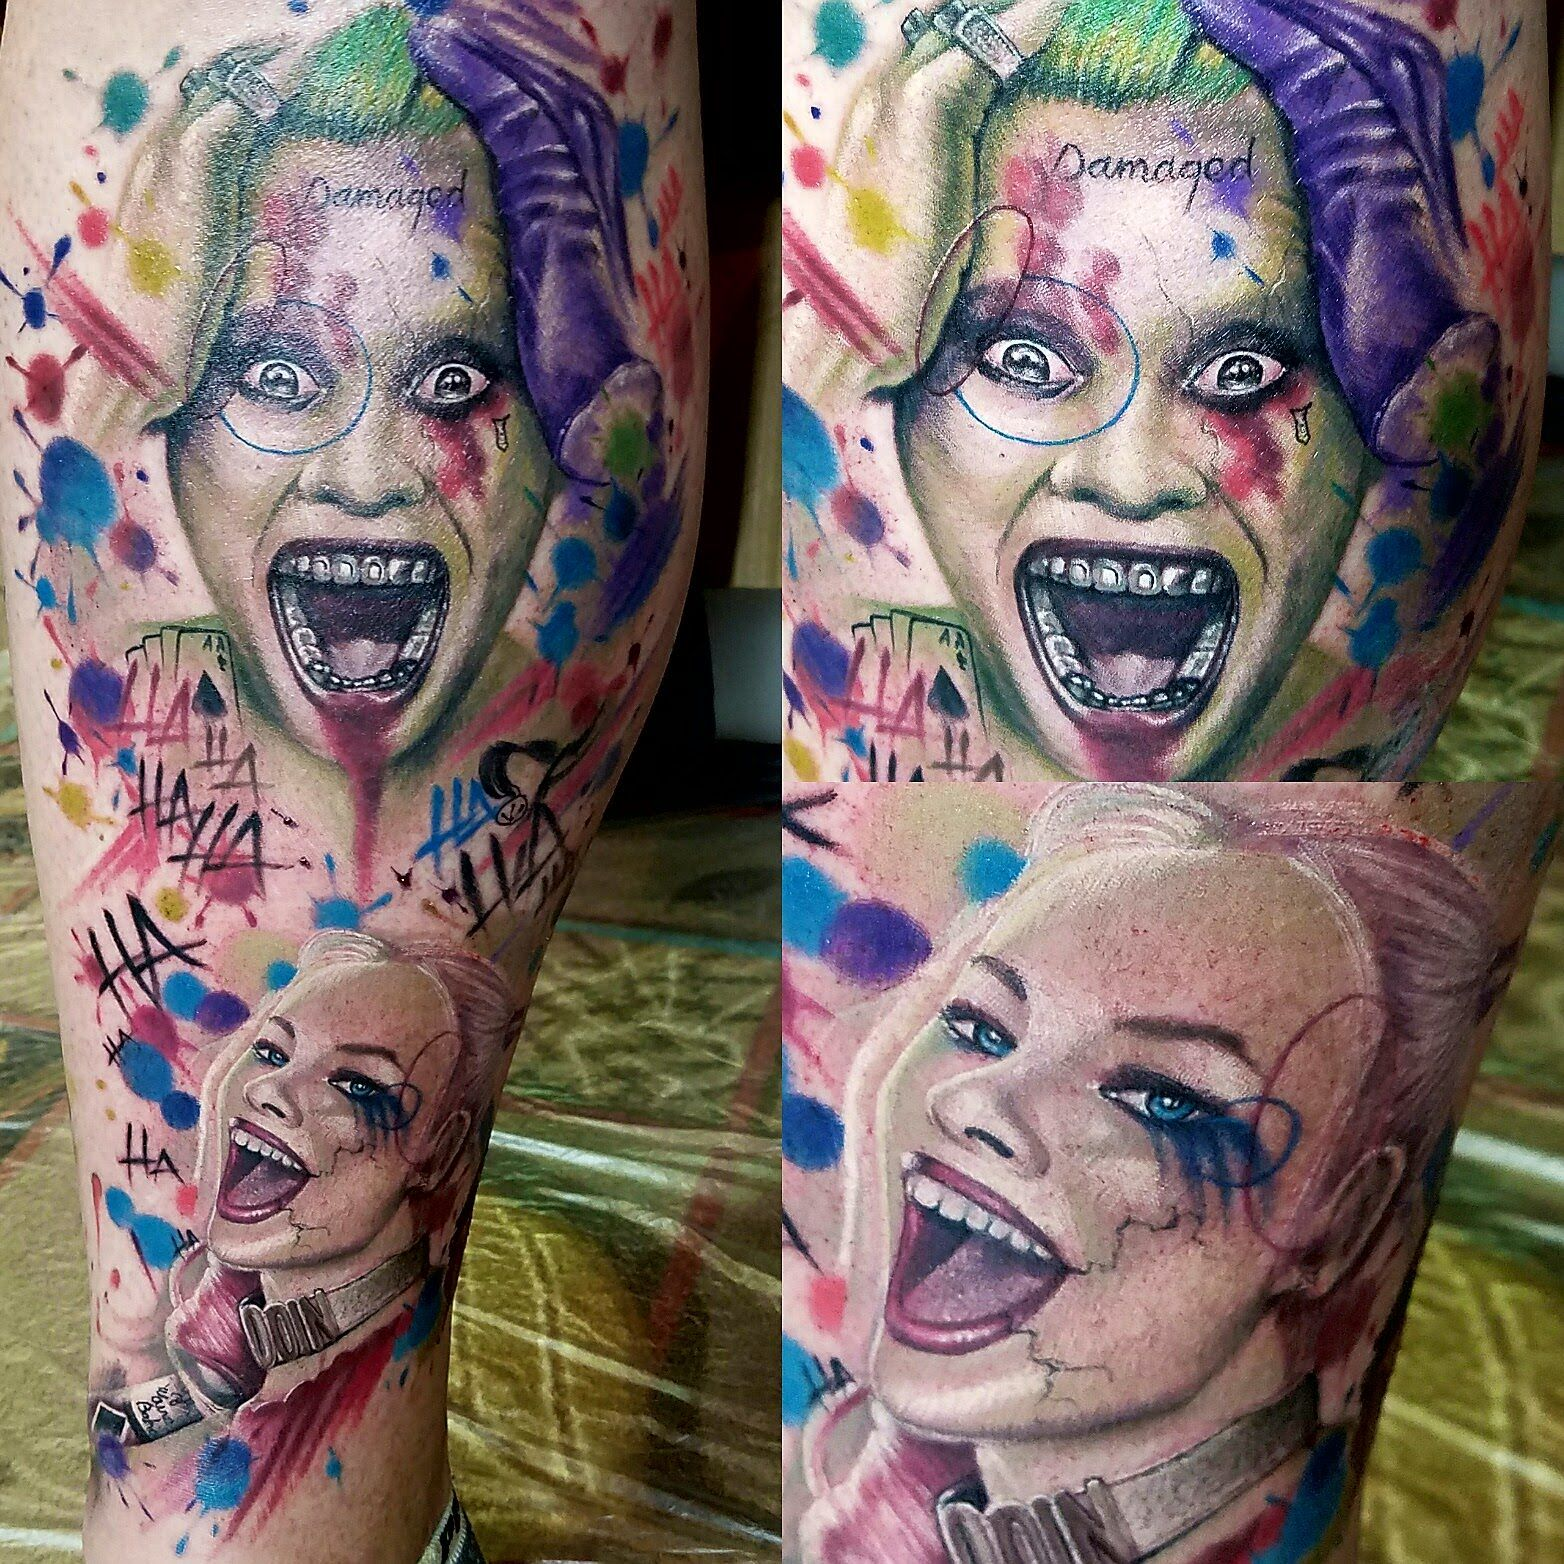 Joker And Harley Quinn Tattoo: Timelapse Of Joker/Harley Suicide Squad Tattoo By Jared